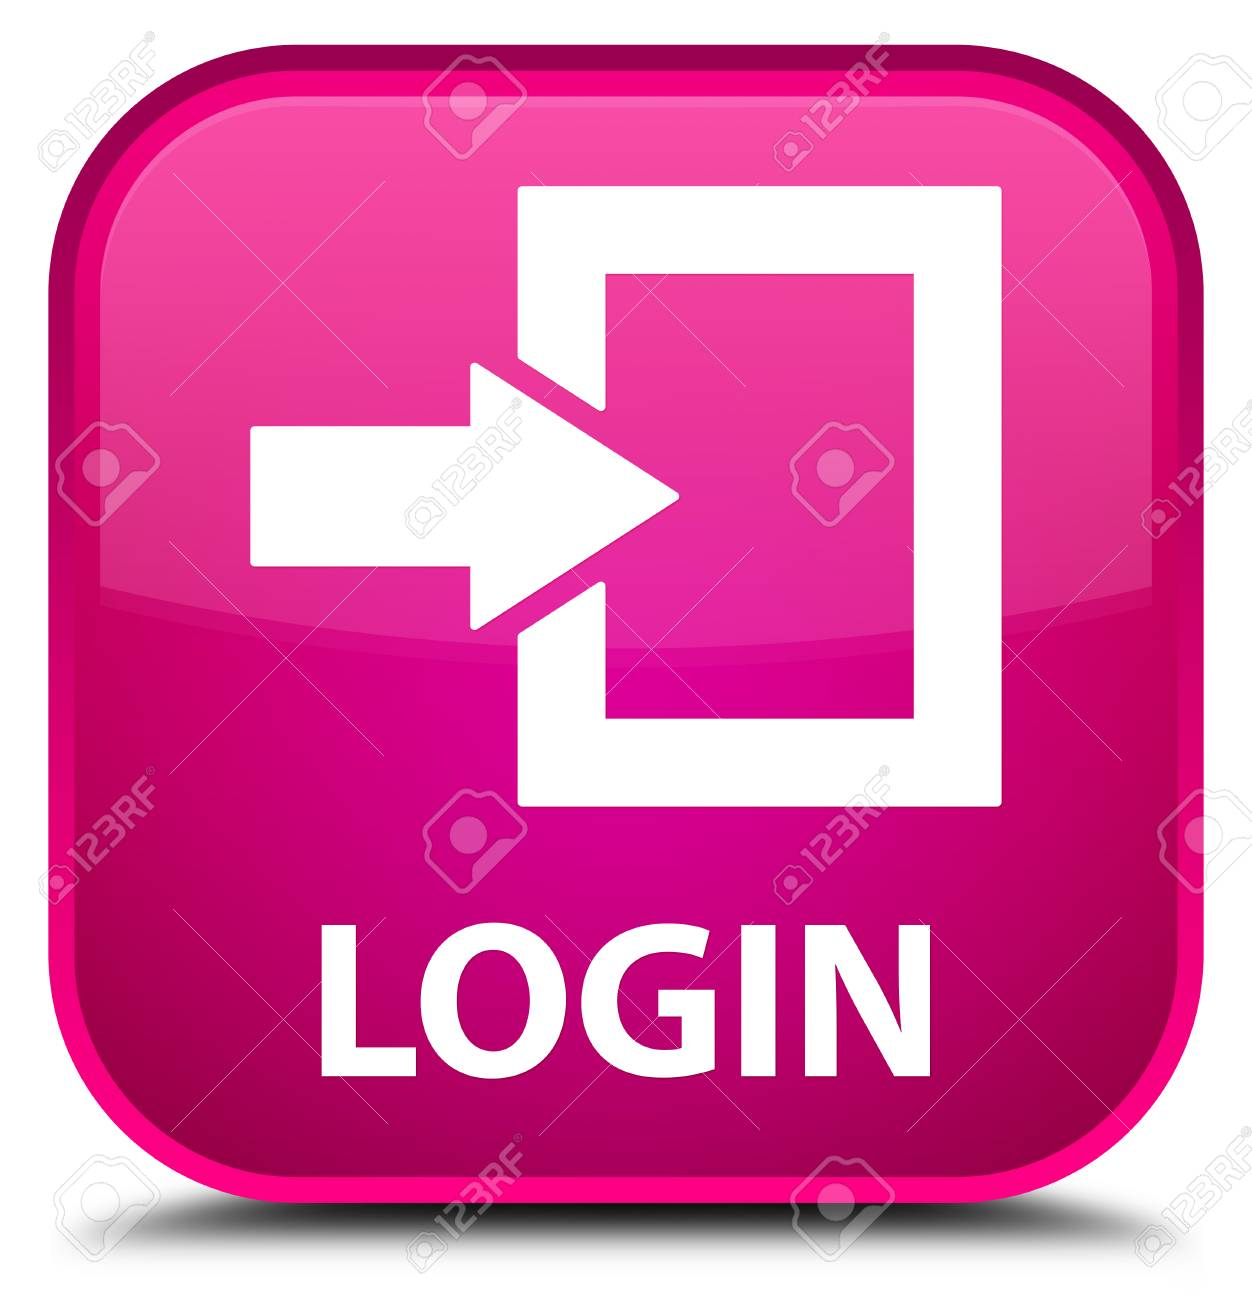 Login pink square button